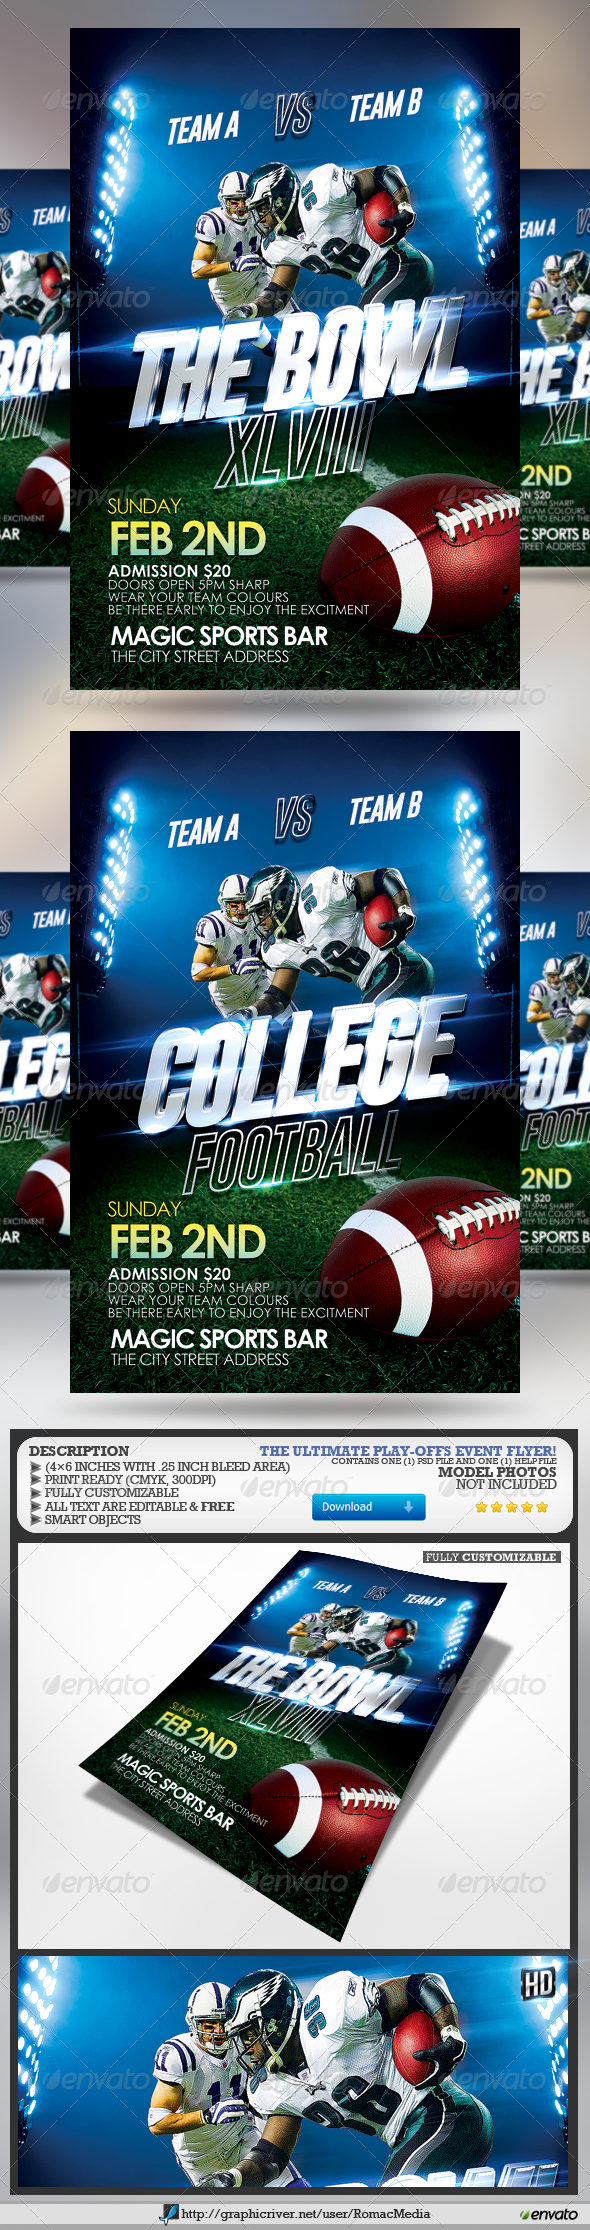 GraphicRiver The Bowl and College Football Flyer 6577570